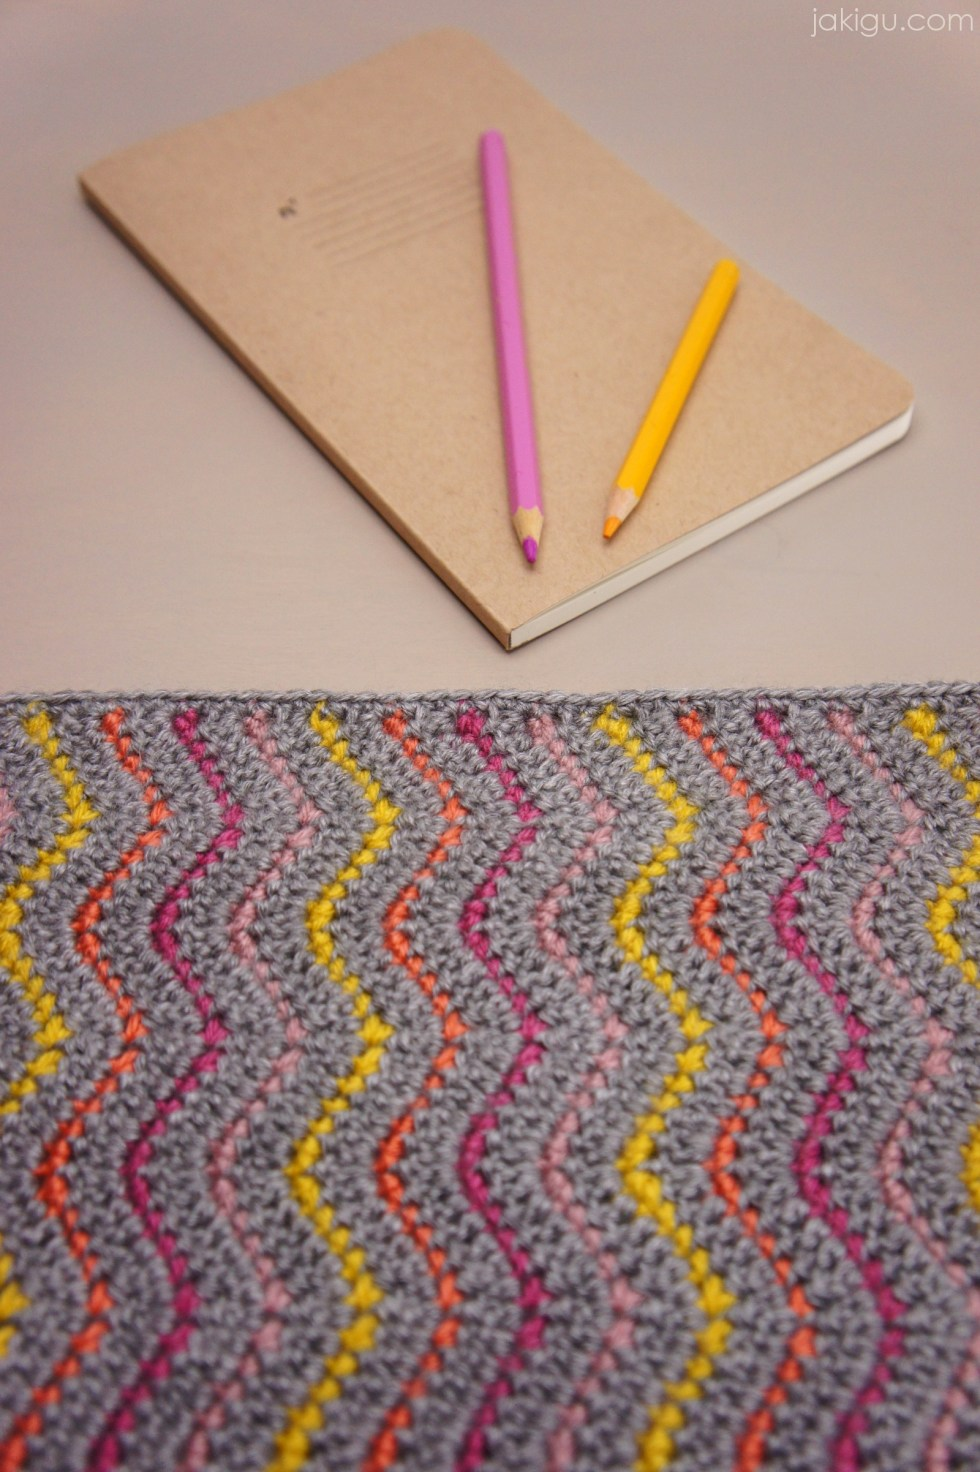 Easy Crochet Book Cover : Work in progress journal cover or clutch jakigu